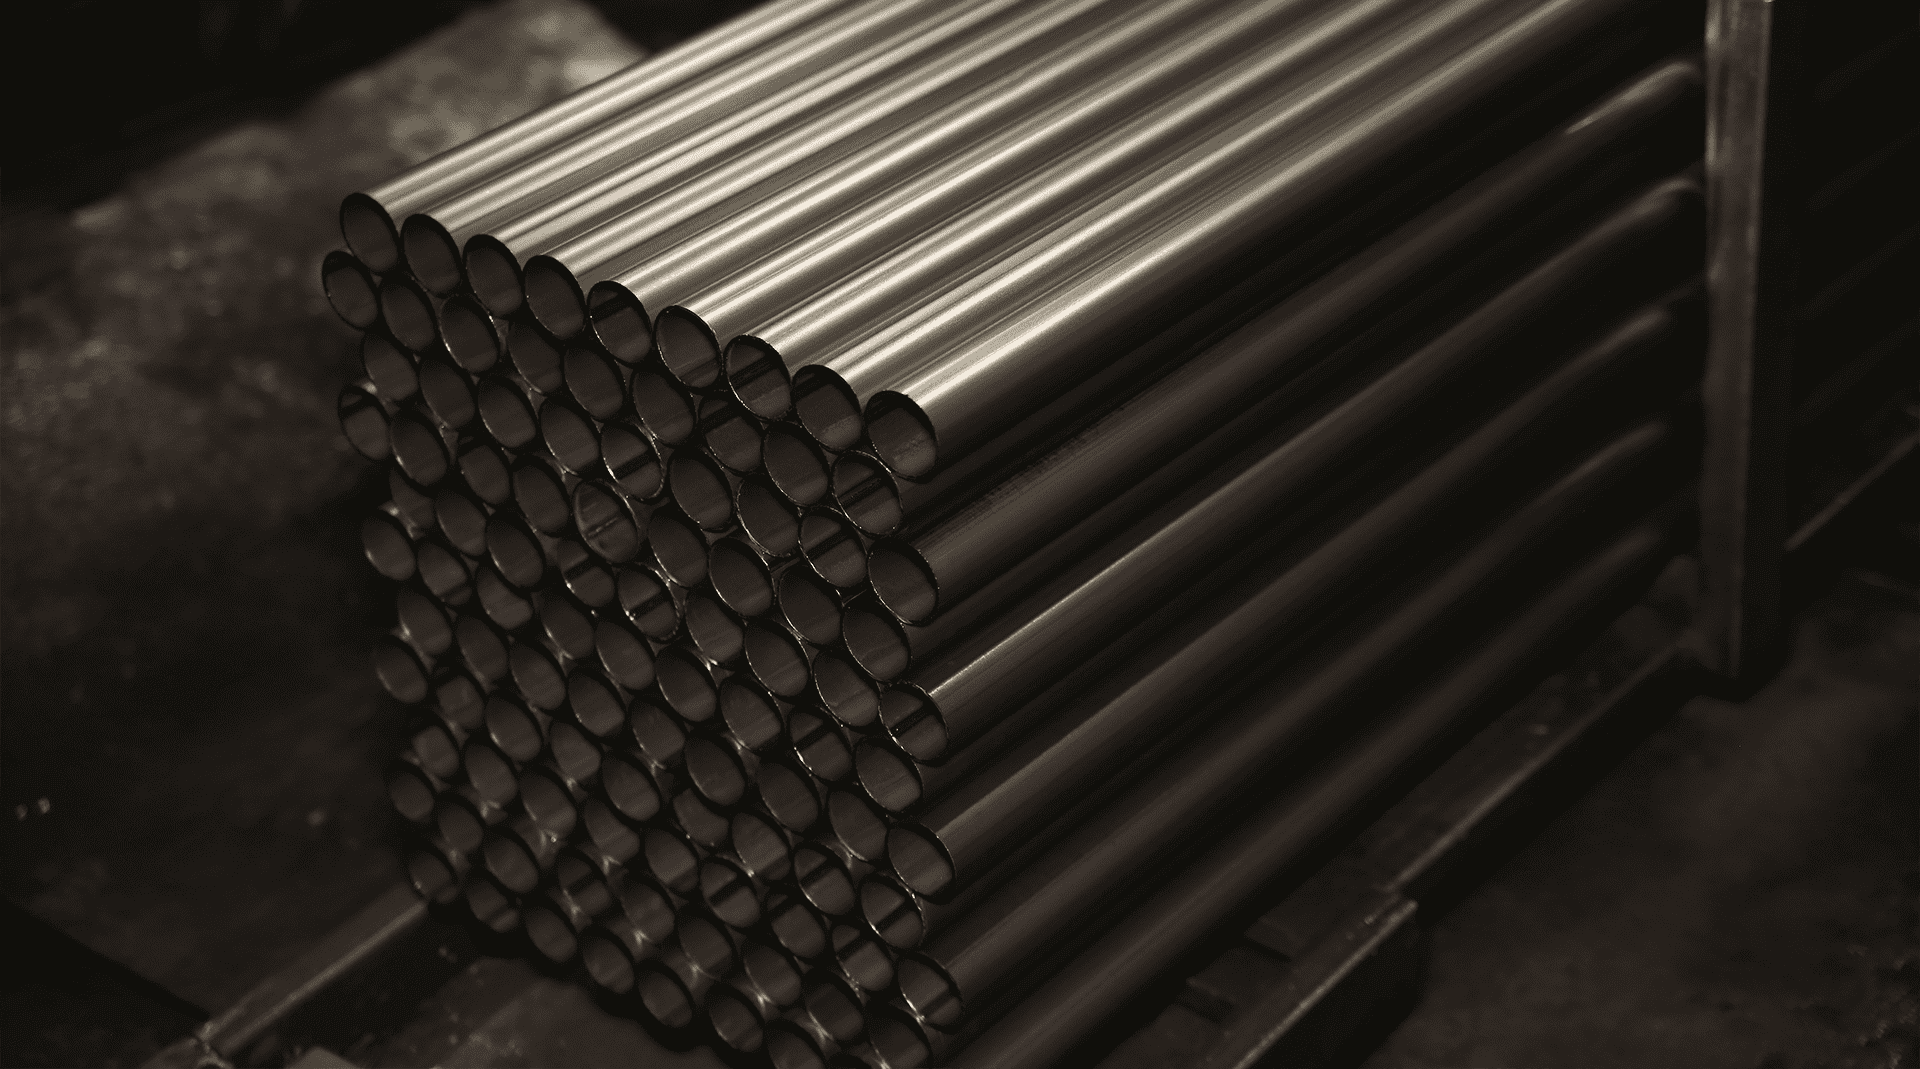 Electric-welded round pipes